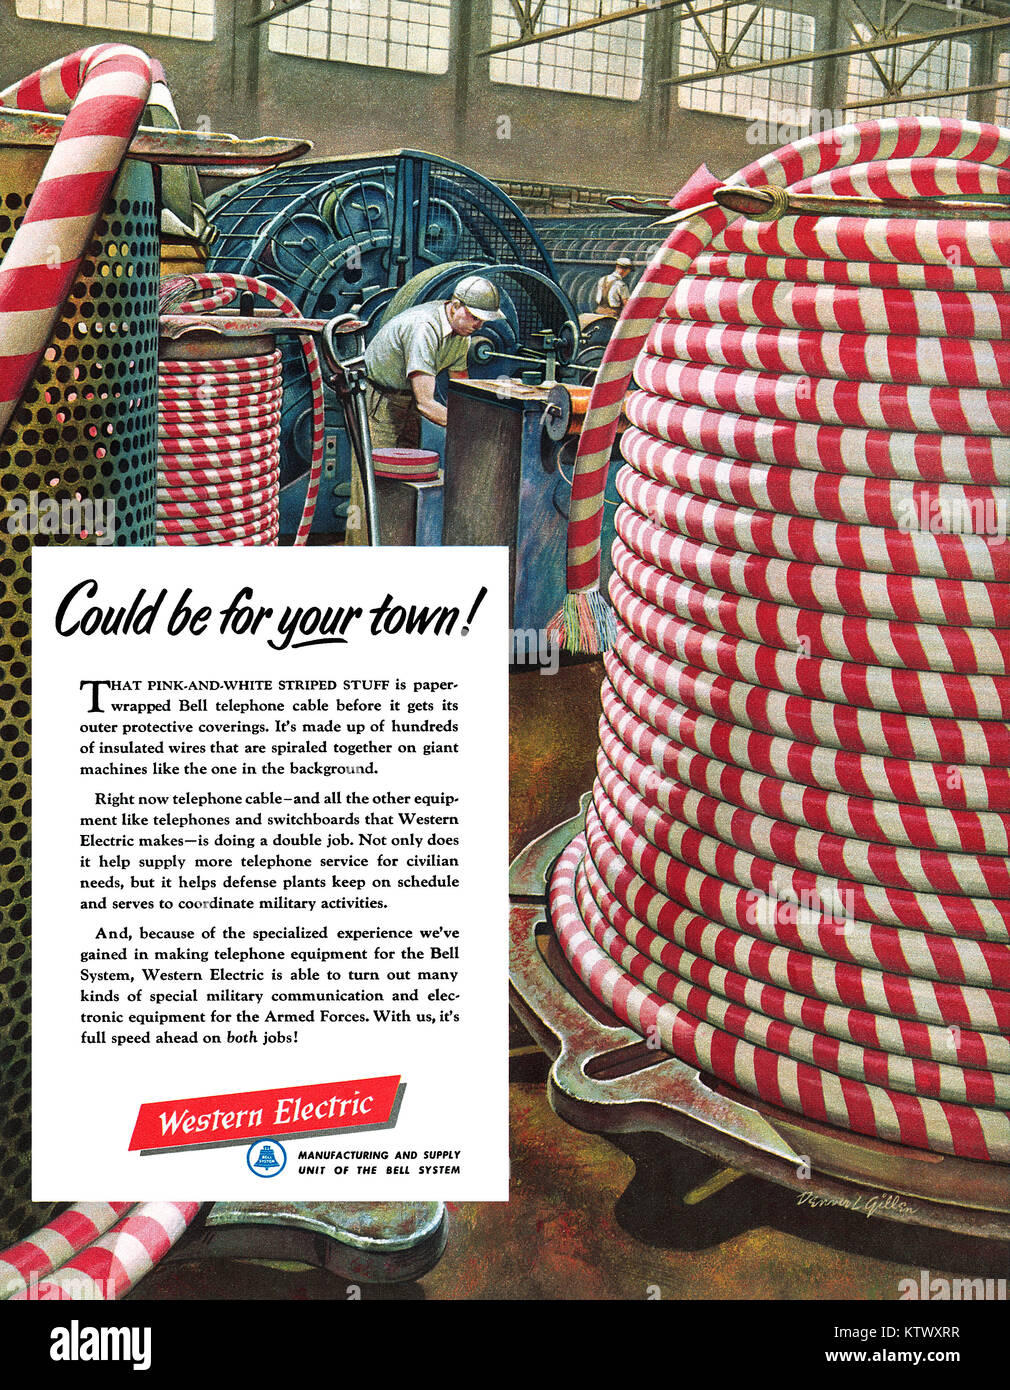 1952 U.S. advertisement for Western Electric. - Stock Image